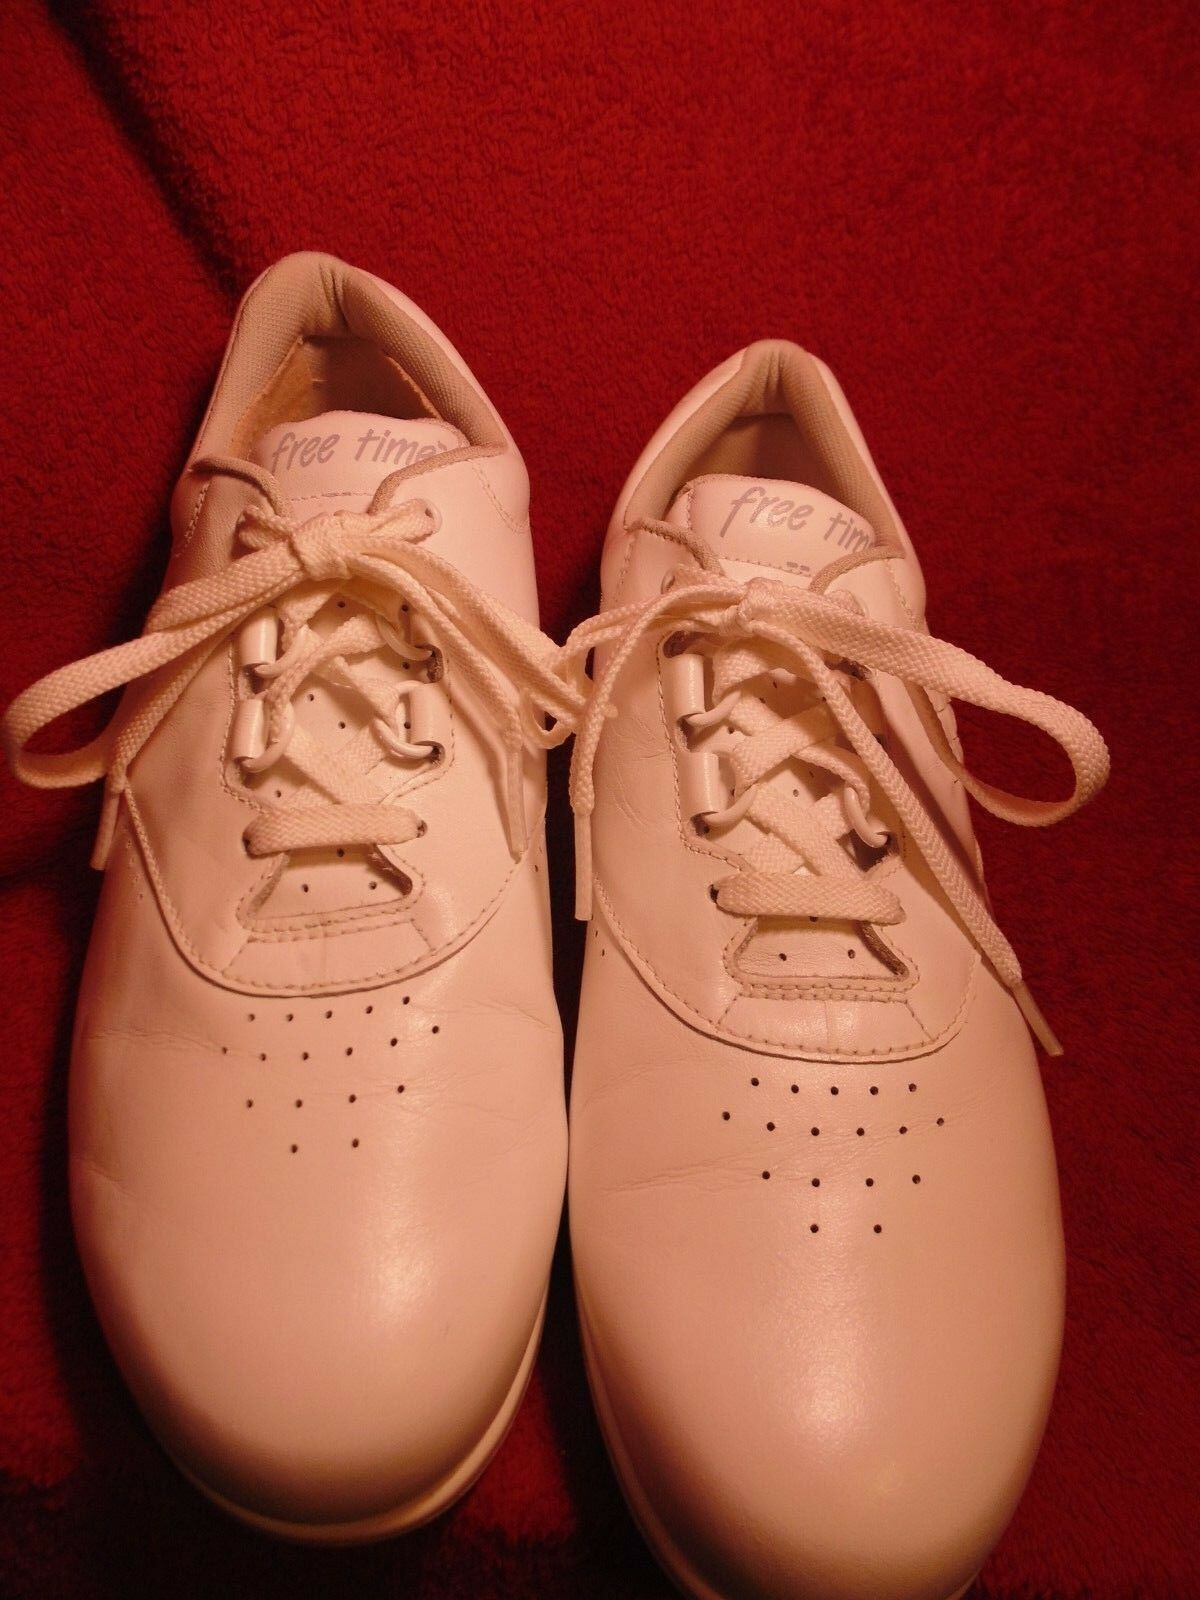 SAS SAS SAS Freetime women's white shoe  size 9M tie oxford 4e7c5d